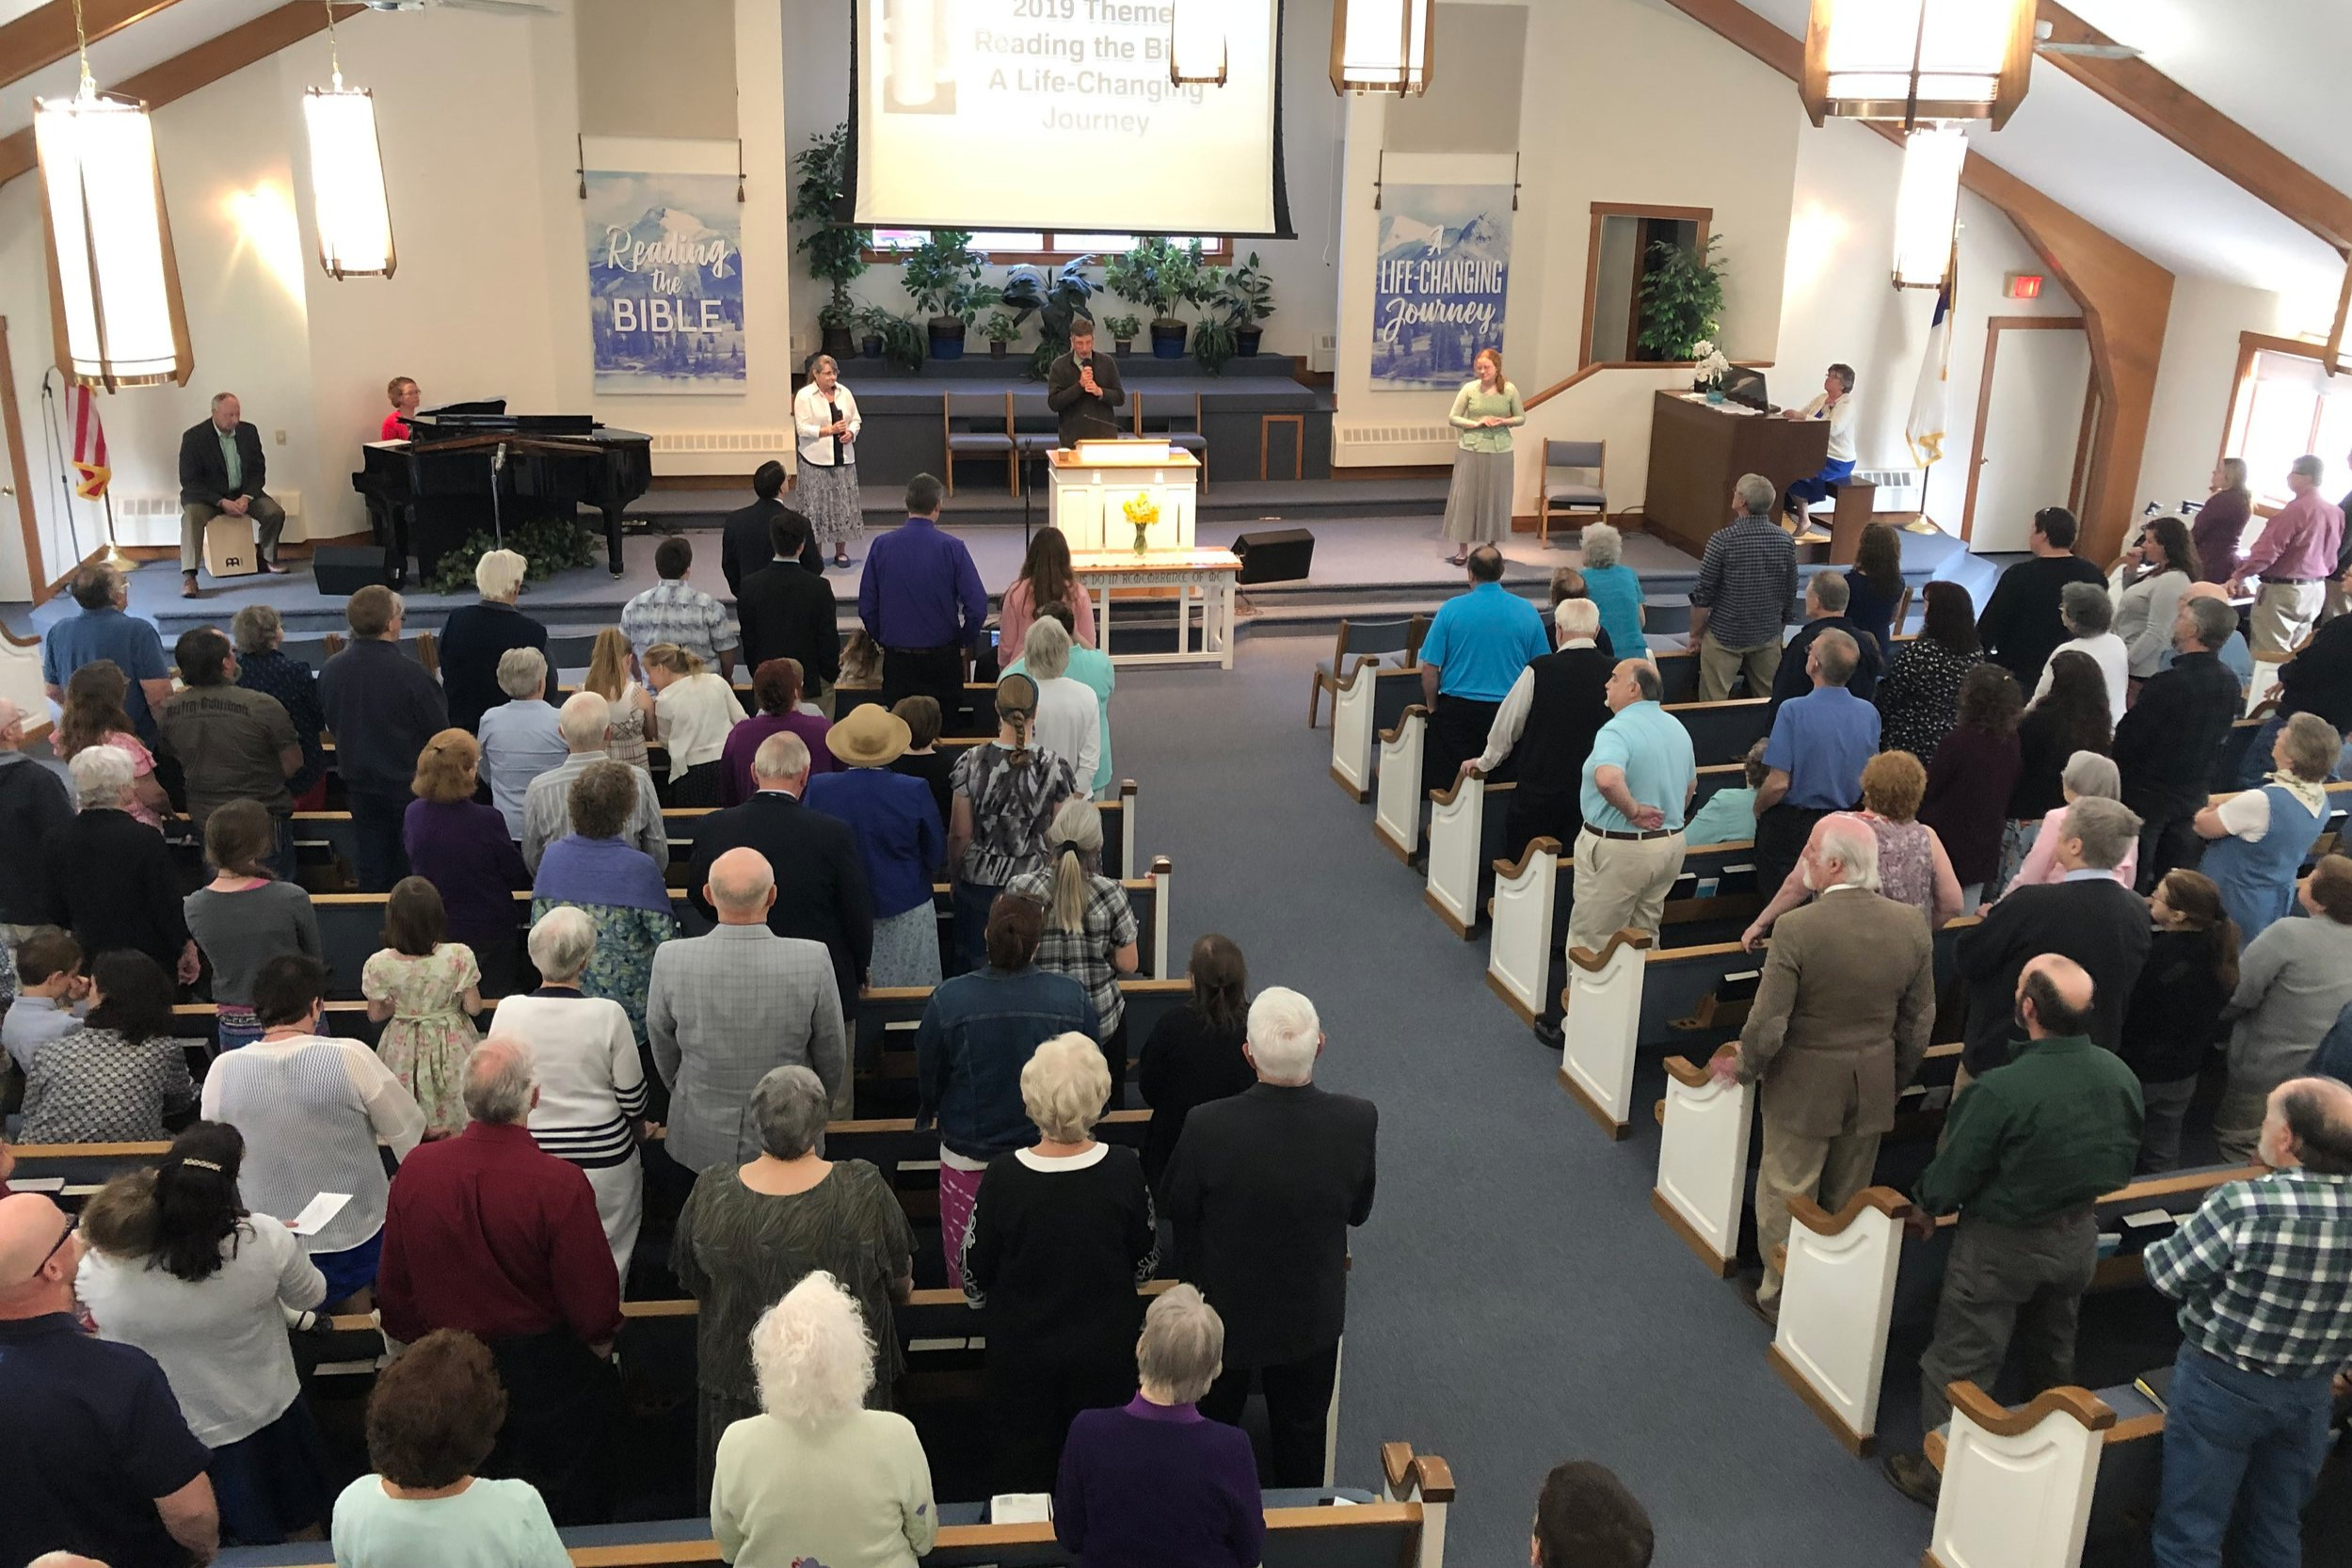 Sunday Services at West Rockport Baptist Church